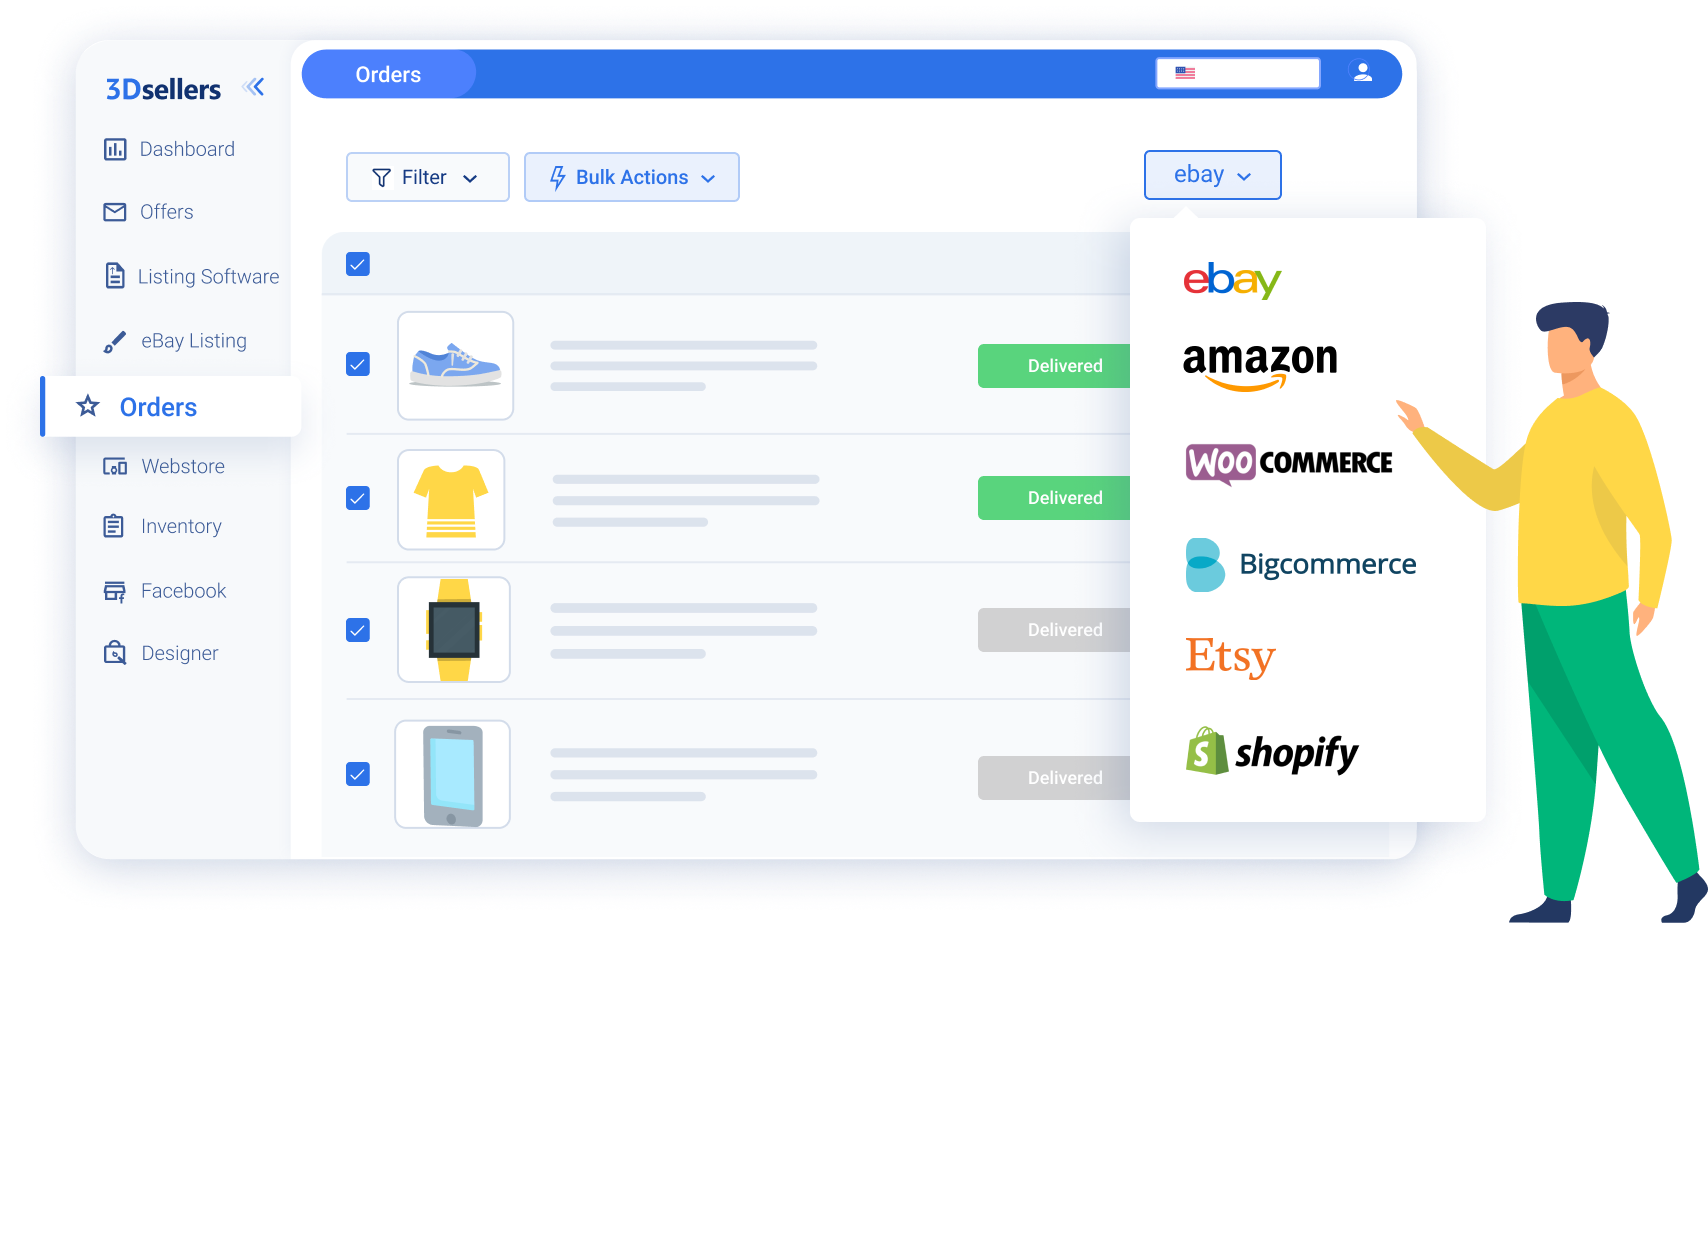 eCommerce seller showcasing the multichannel marketplaces he uses 3Dsellers to manage multichannel orders from Amazon, eBay, WooCommerce, Etsy, Shopify, email, and more.